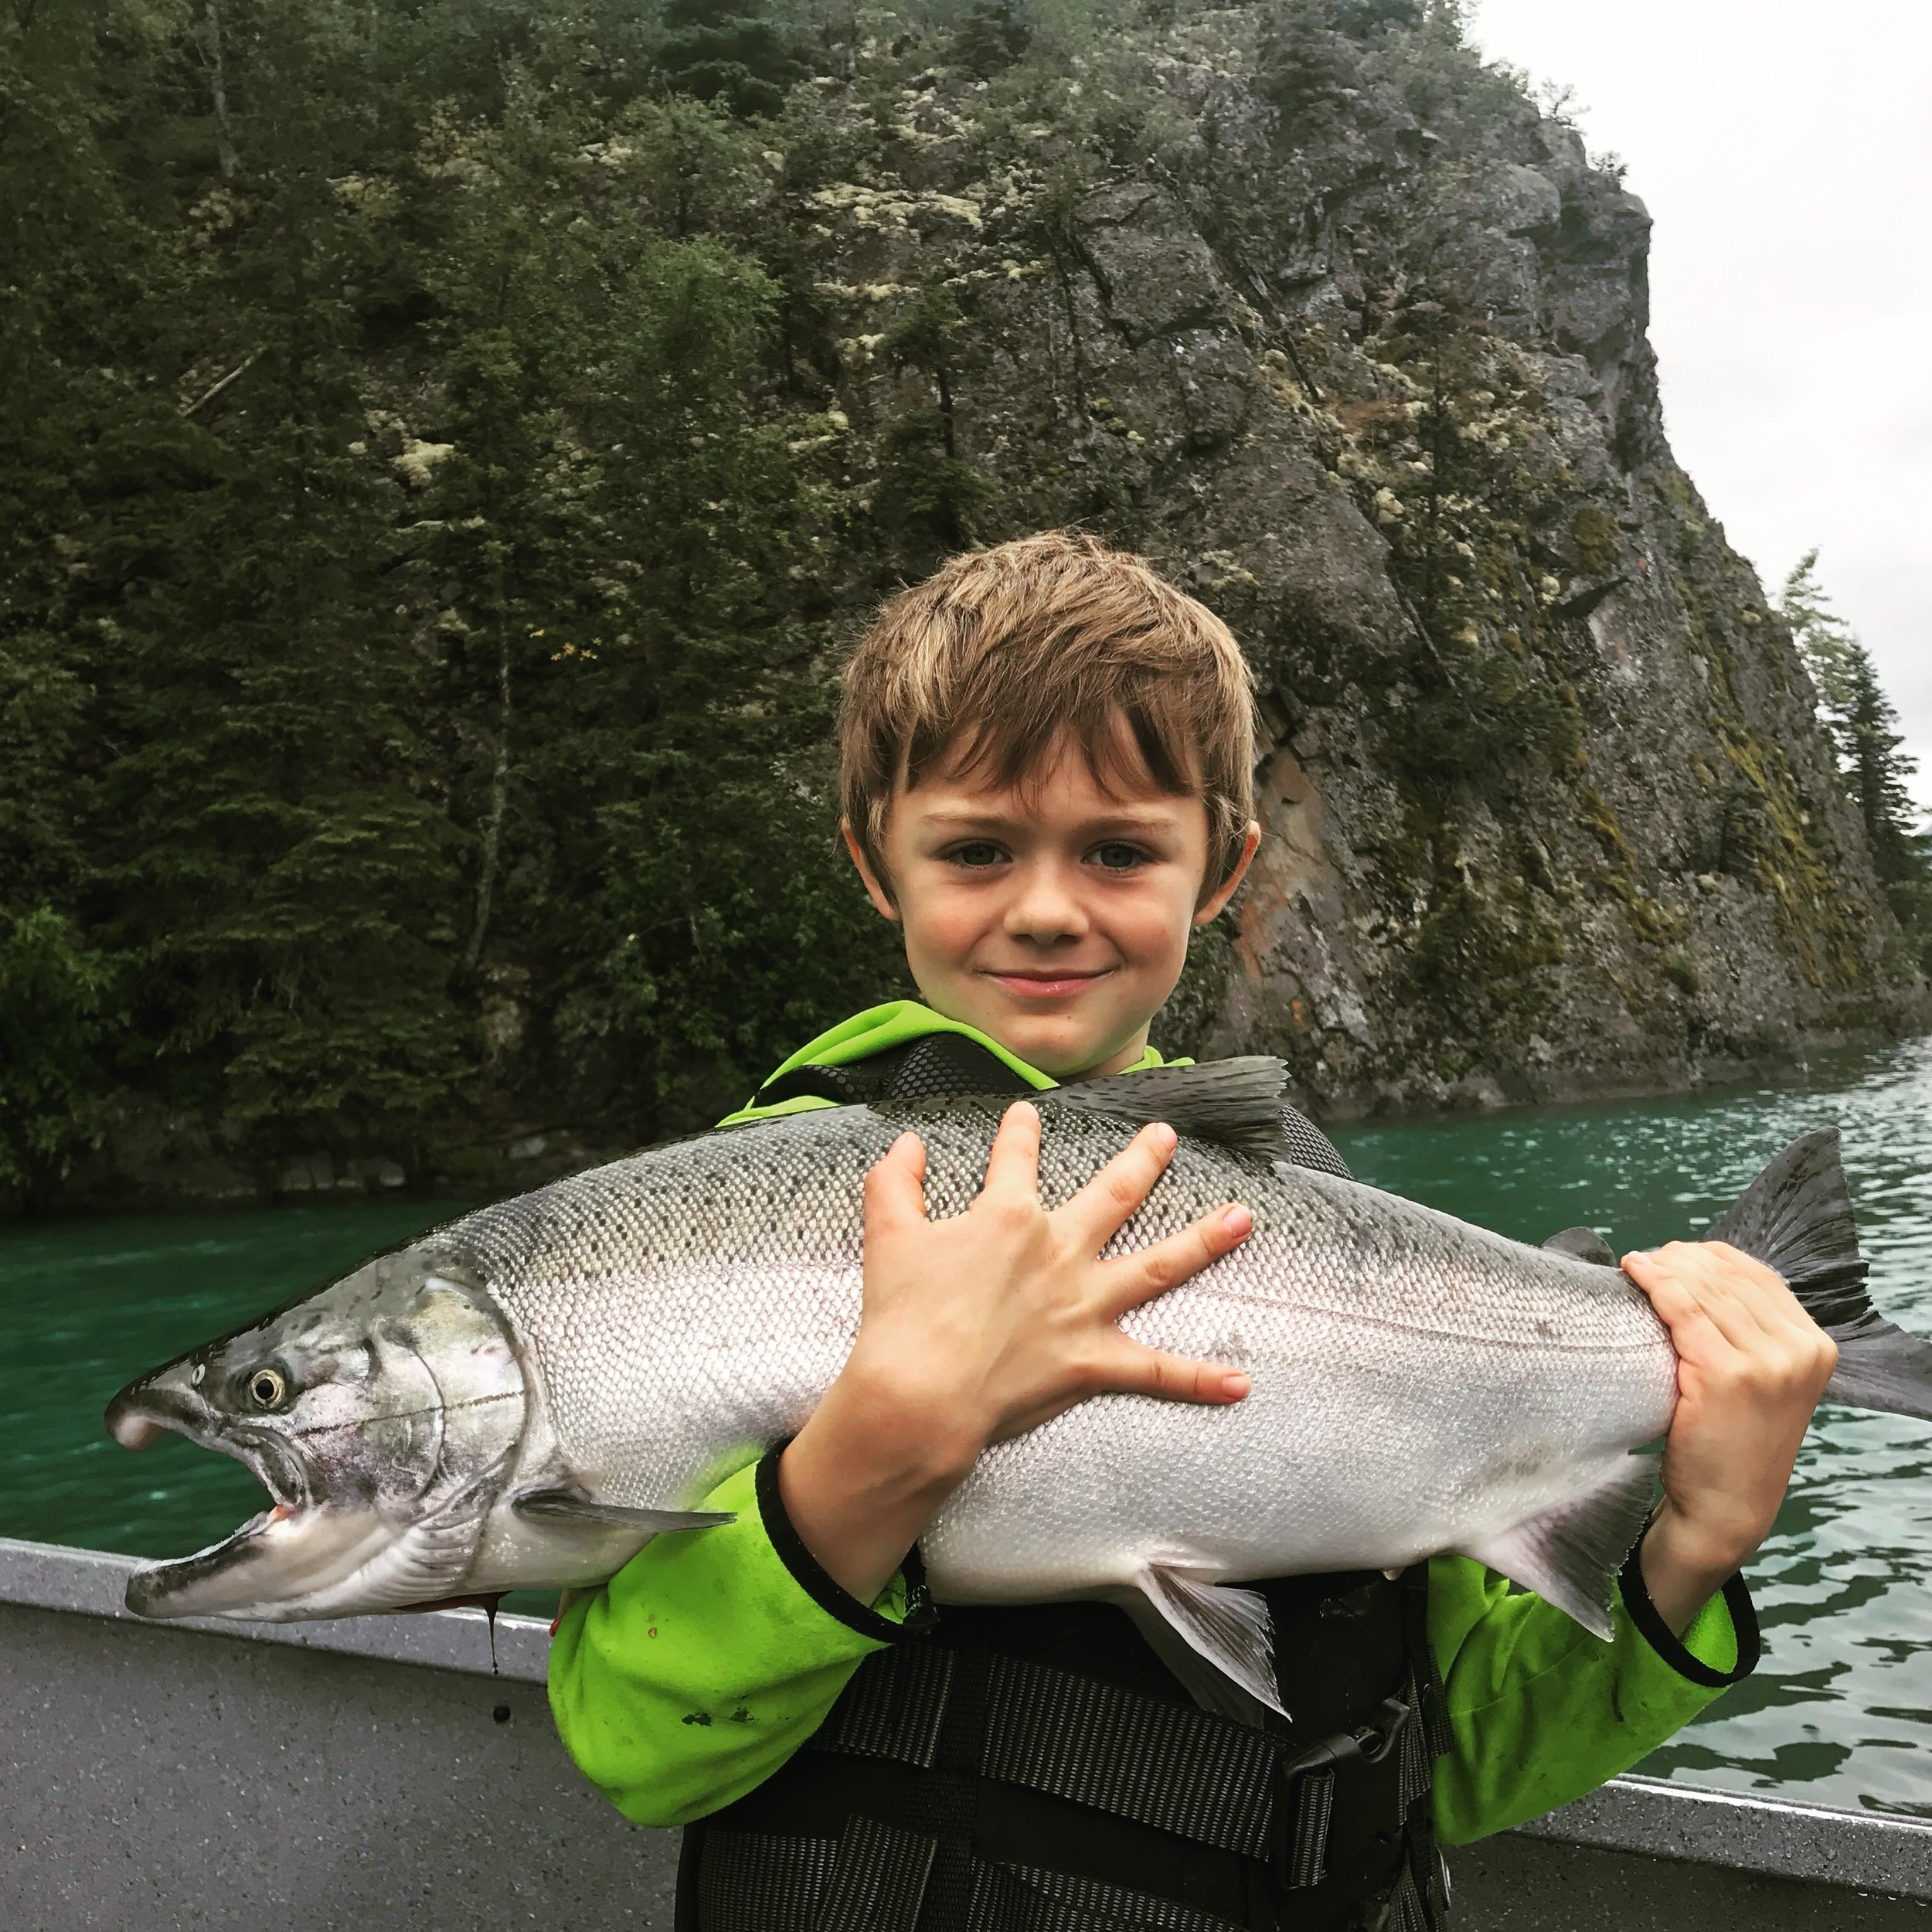 Bright Coho(silver) salmon on the fly! Come and catch one of the acrobats yourself and fill your freezer with fresh organic meat!